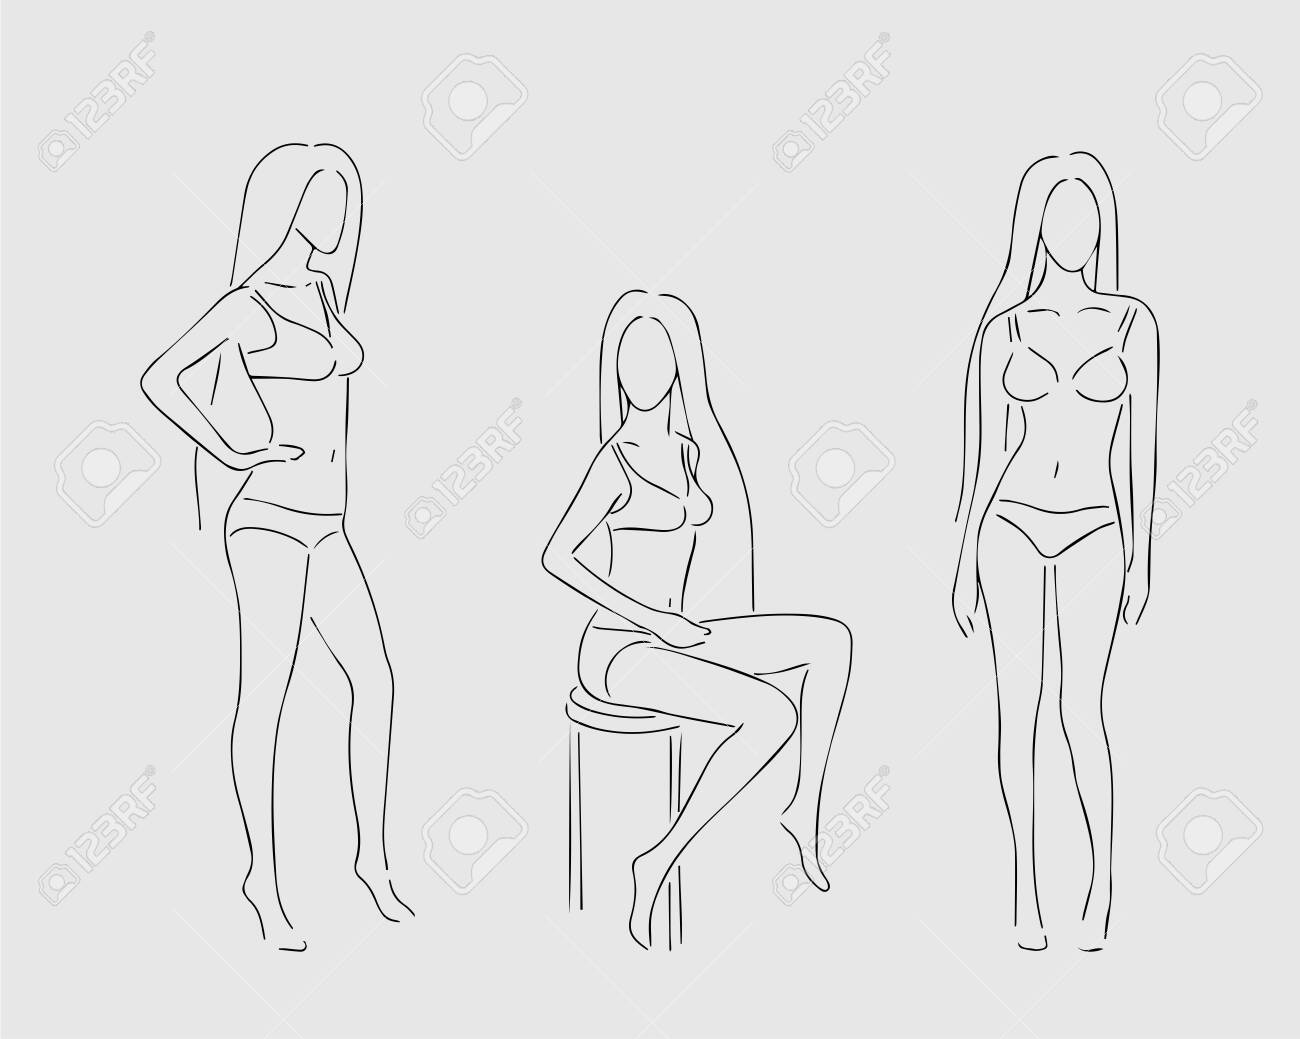 Outline Of Female Body Figure Wearing Underwear In Three Poses Royalty Free Cliparts Vectors And Stock Illustration Image 128972299